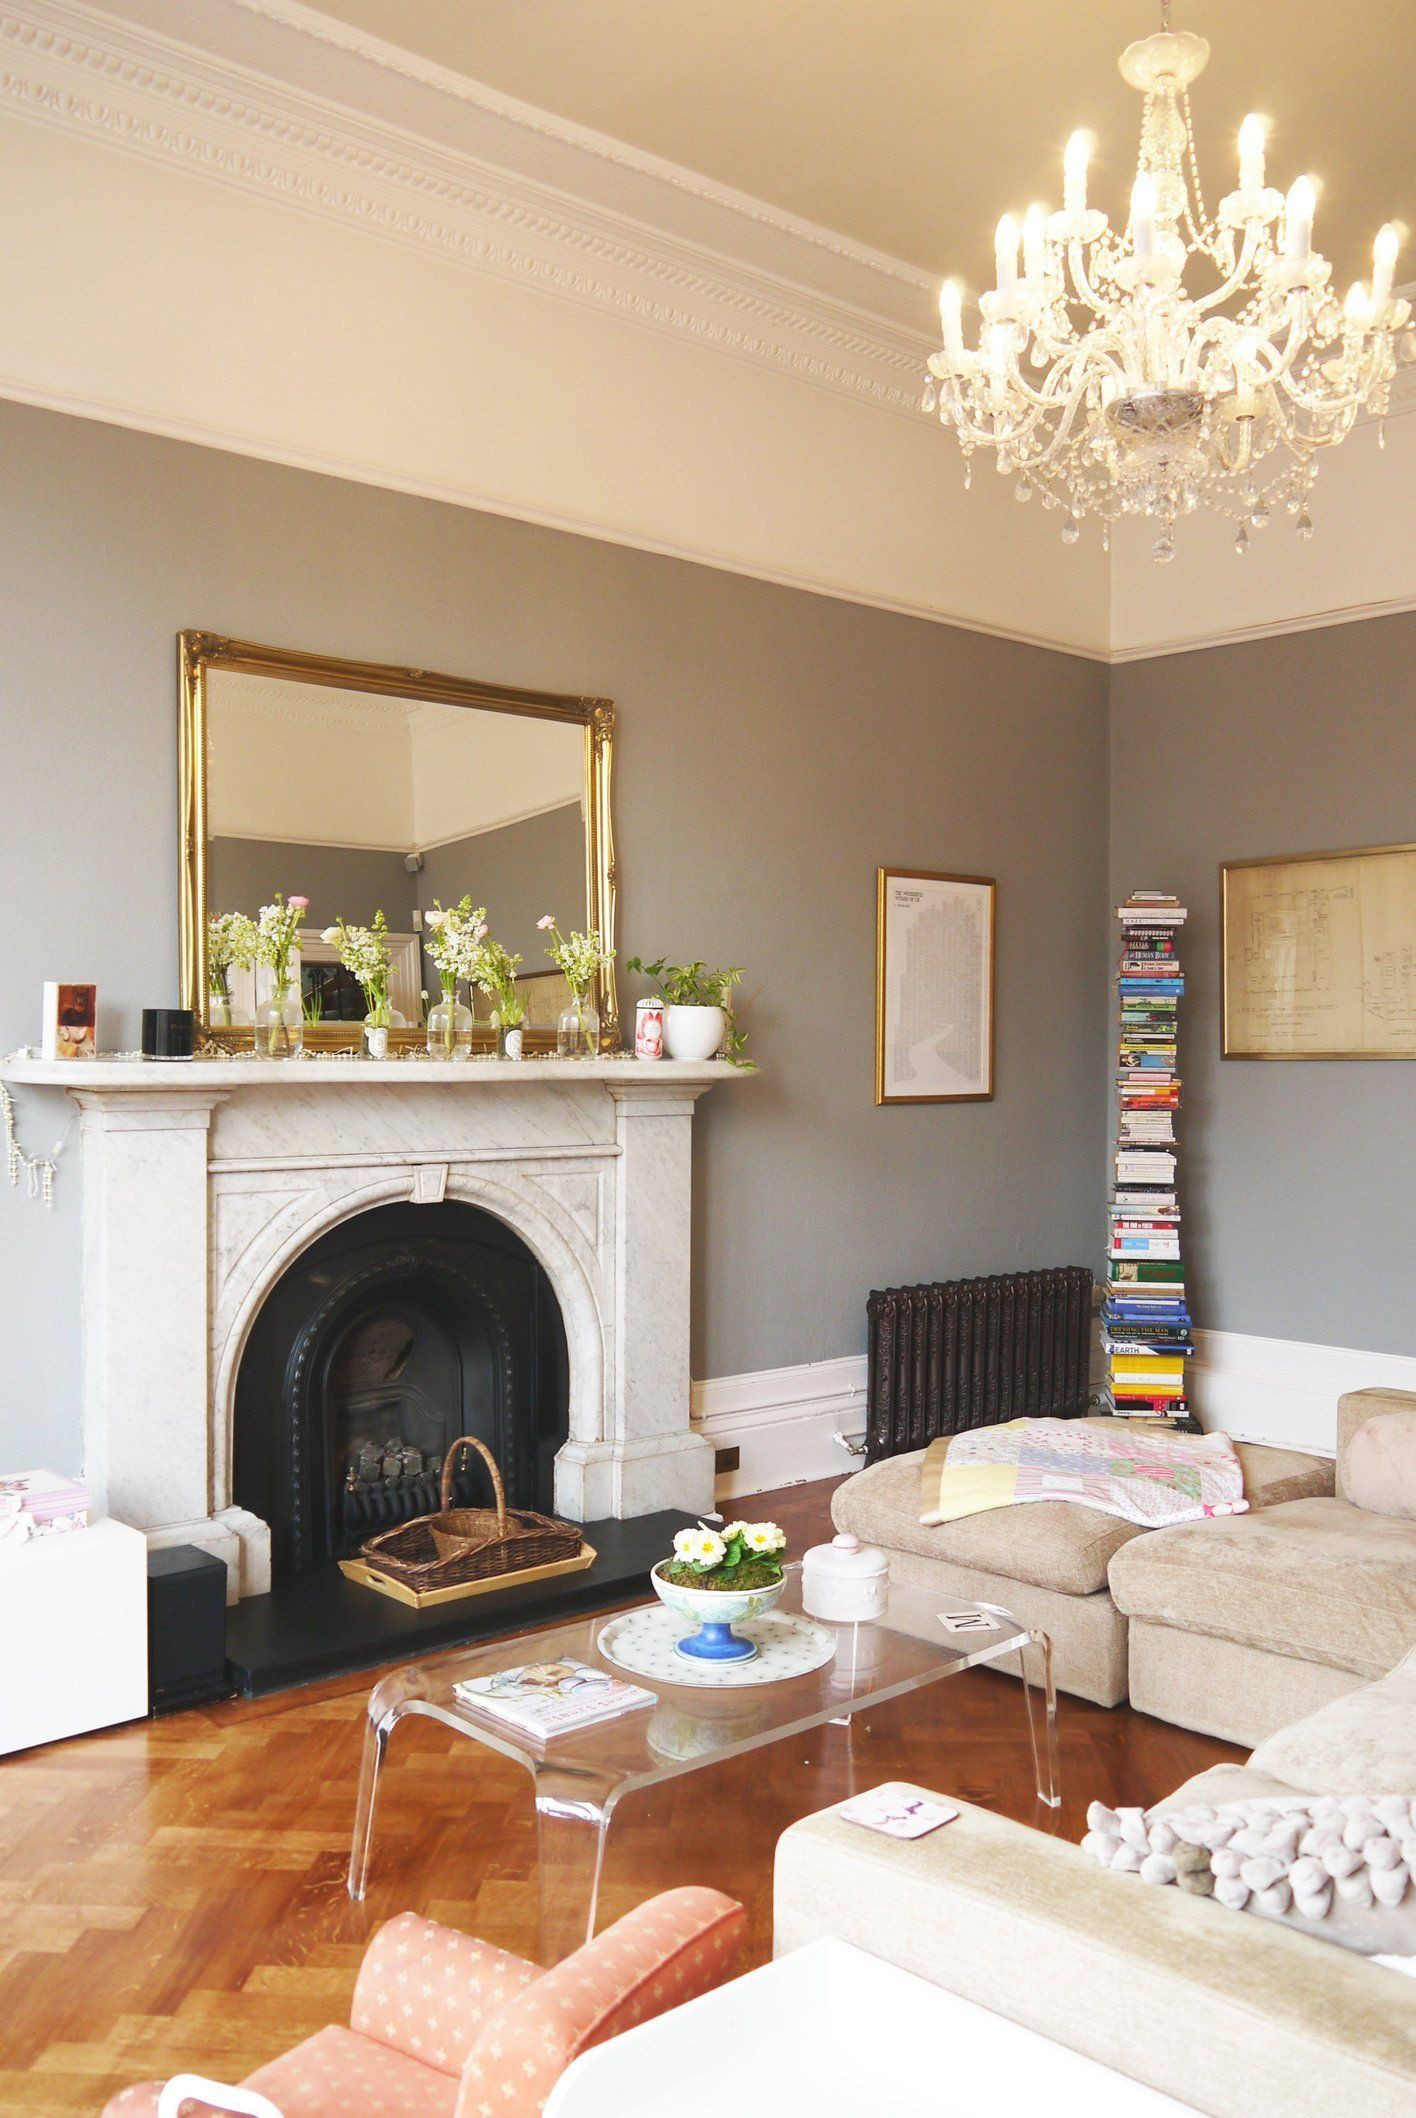 Best ideas about Wall Paint Colors . Save or Pin Better Than Beige 6 Nice & Neutral Wall Paint Colors Now.